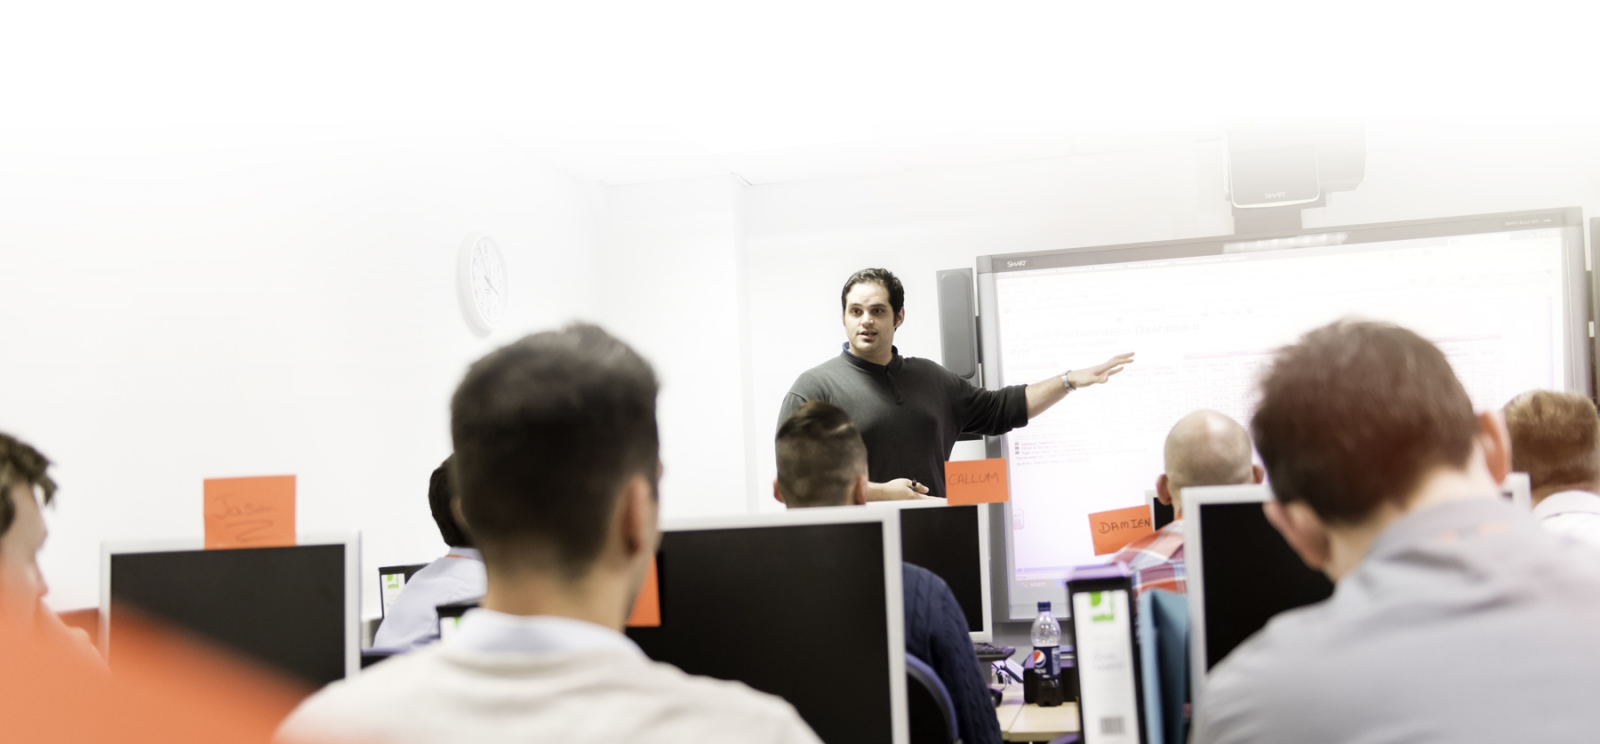 Man presenting in a training session inside a training room